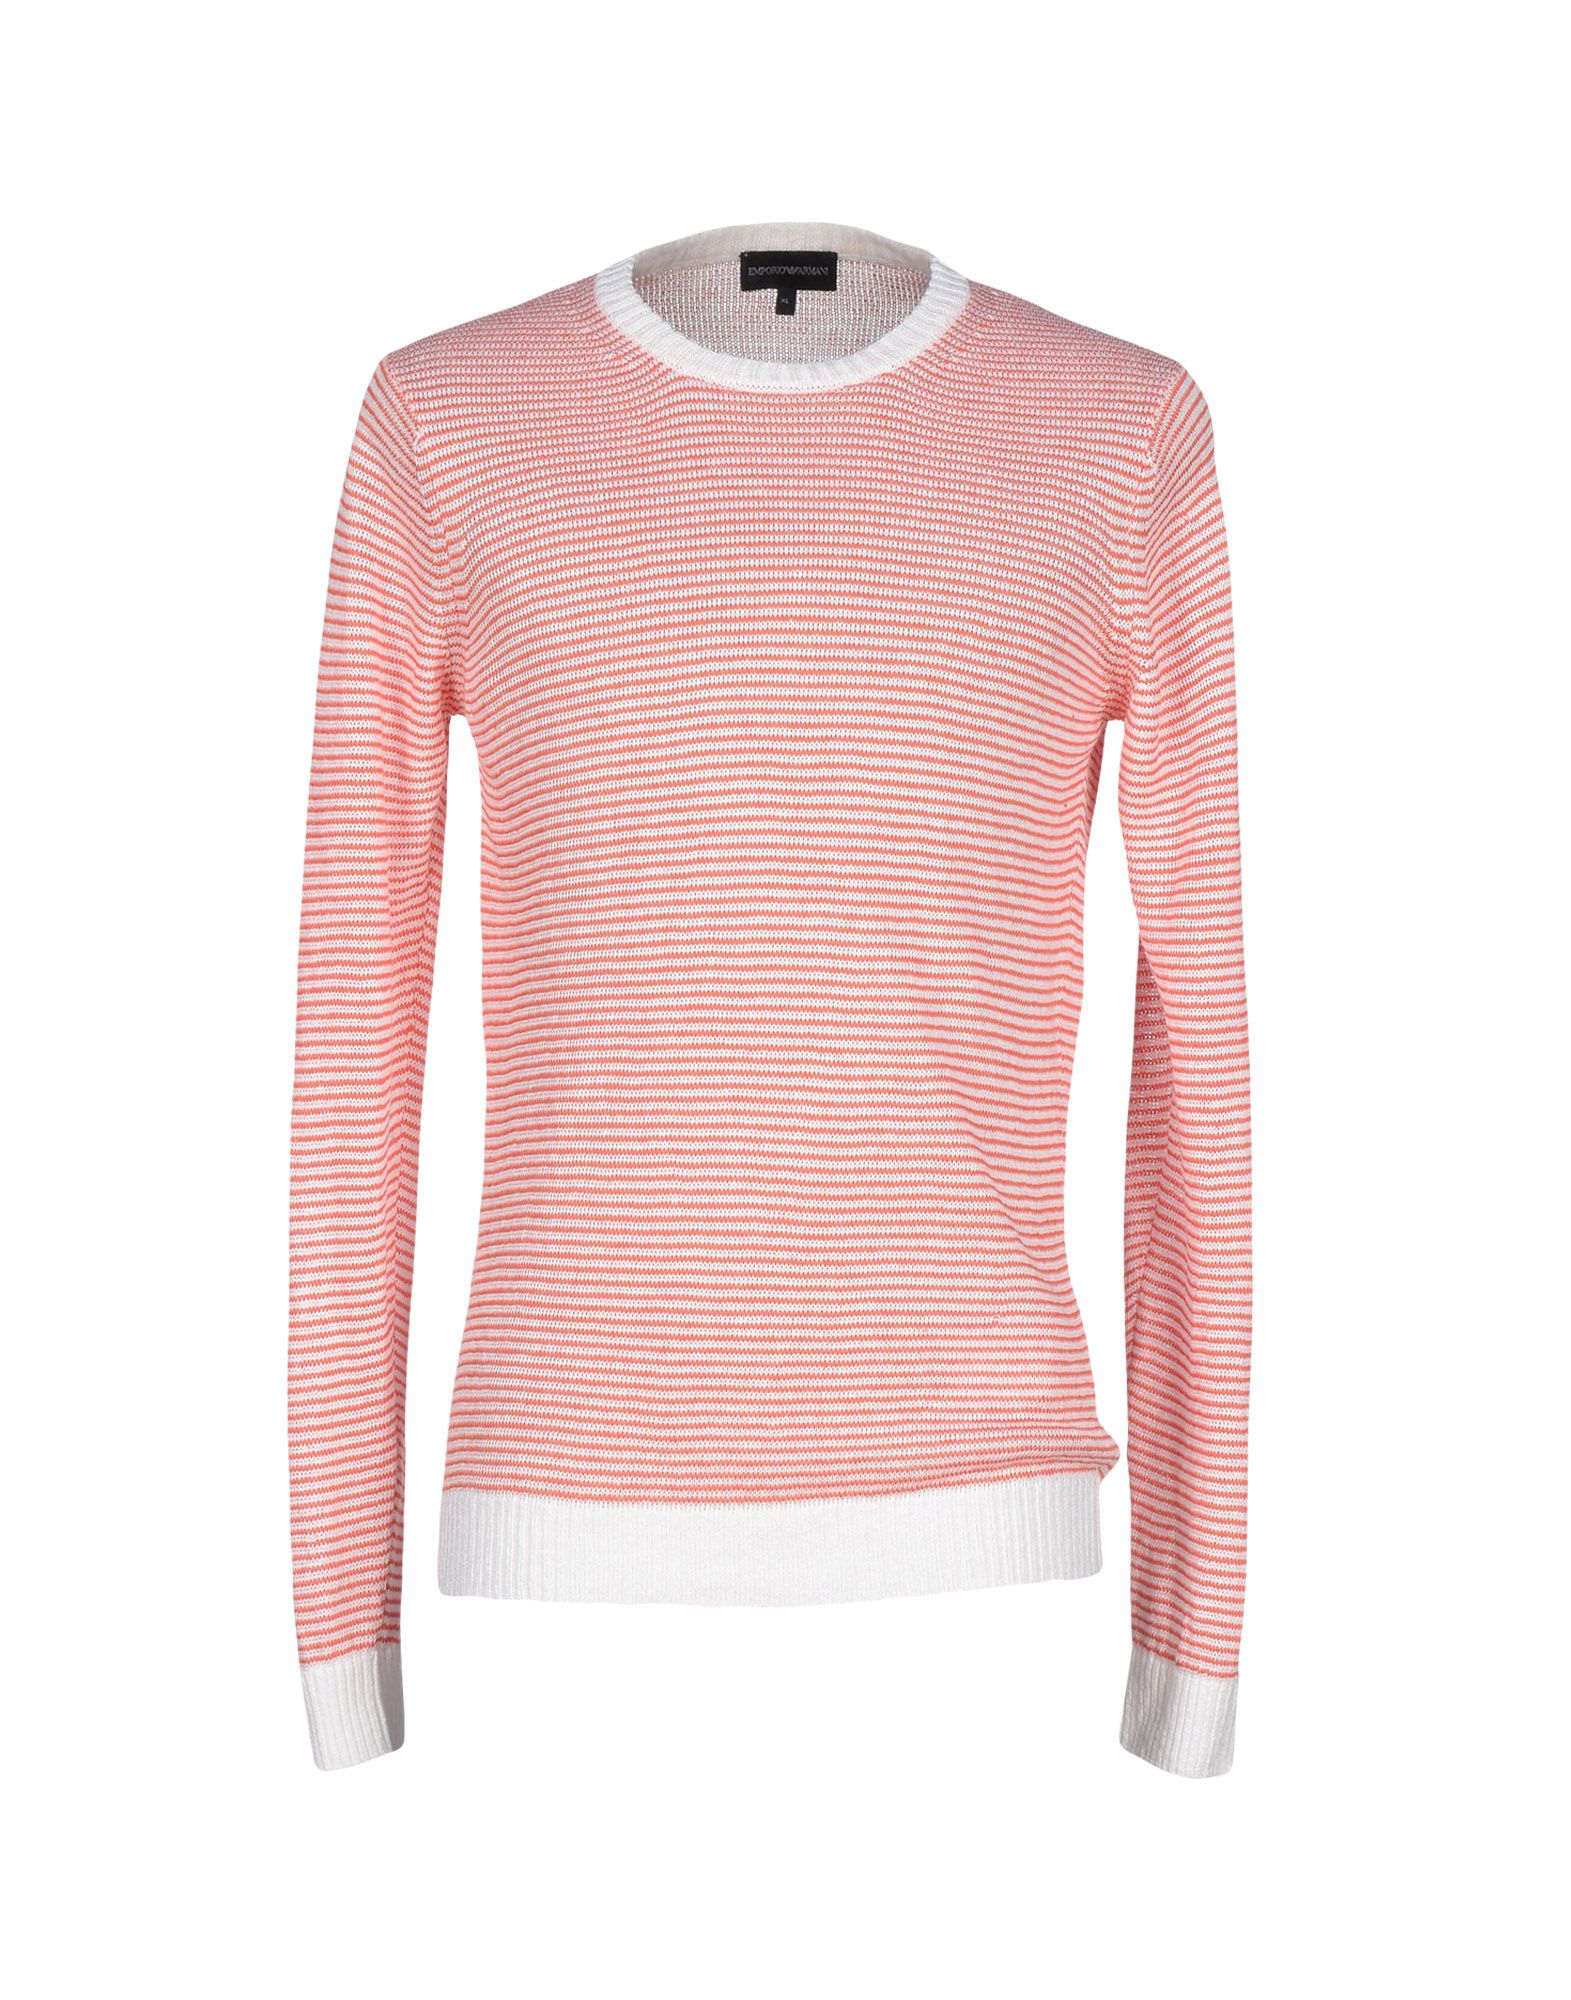 emporio armani sweater in pink for men lyst. Black Bedroom Furniture Sets. Home Design Ideas